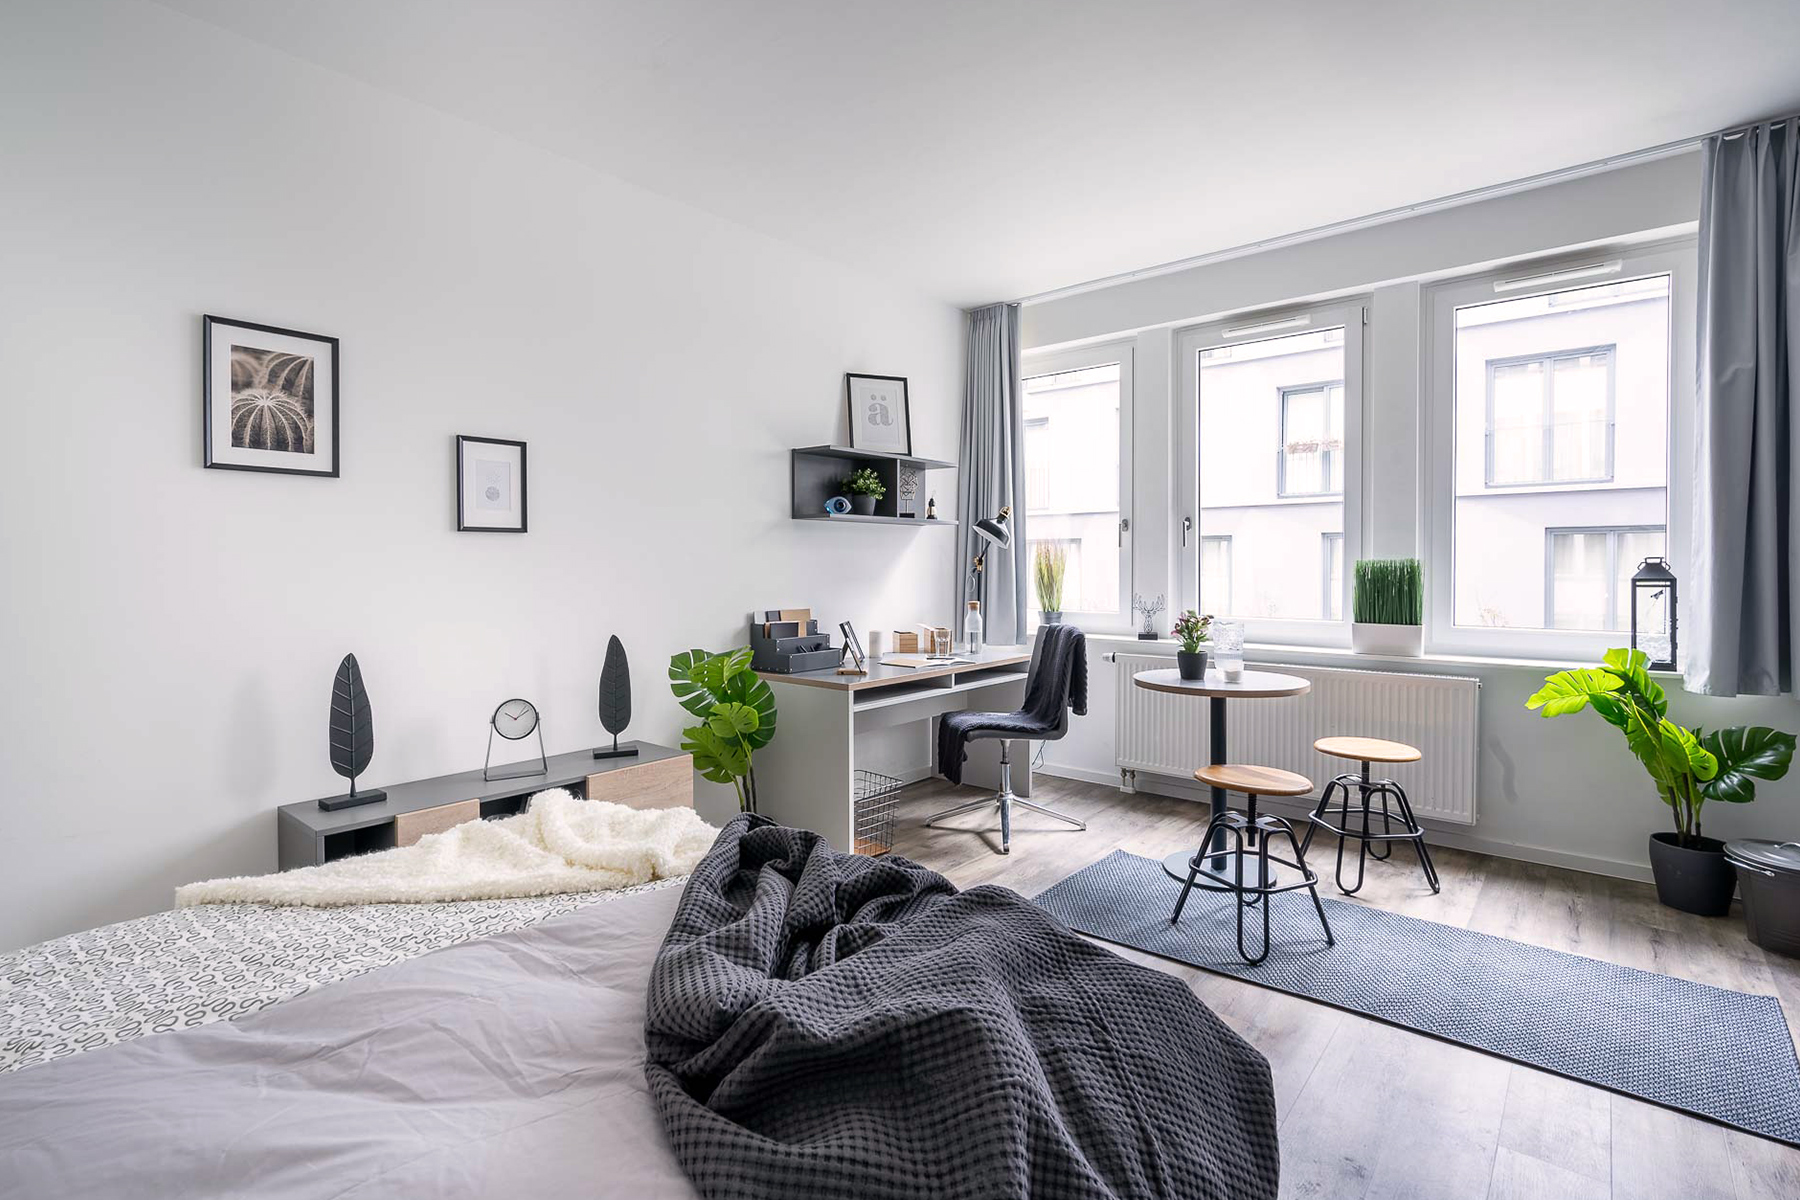 A large, light studio apartment with a double bed in the front, a round coffee table and two stools in the back beneath the window front and a desk and chair beside it.